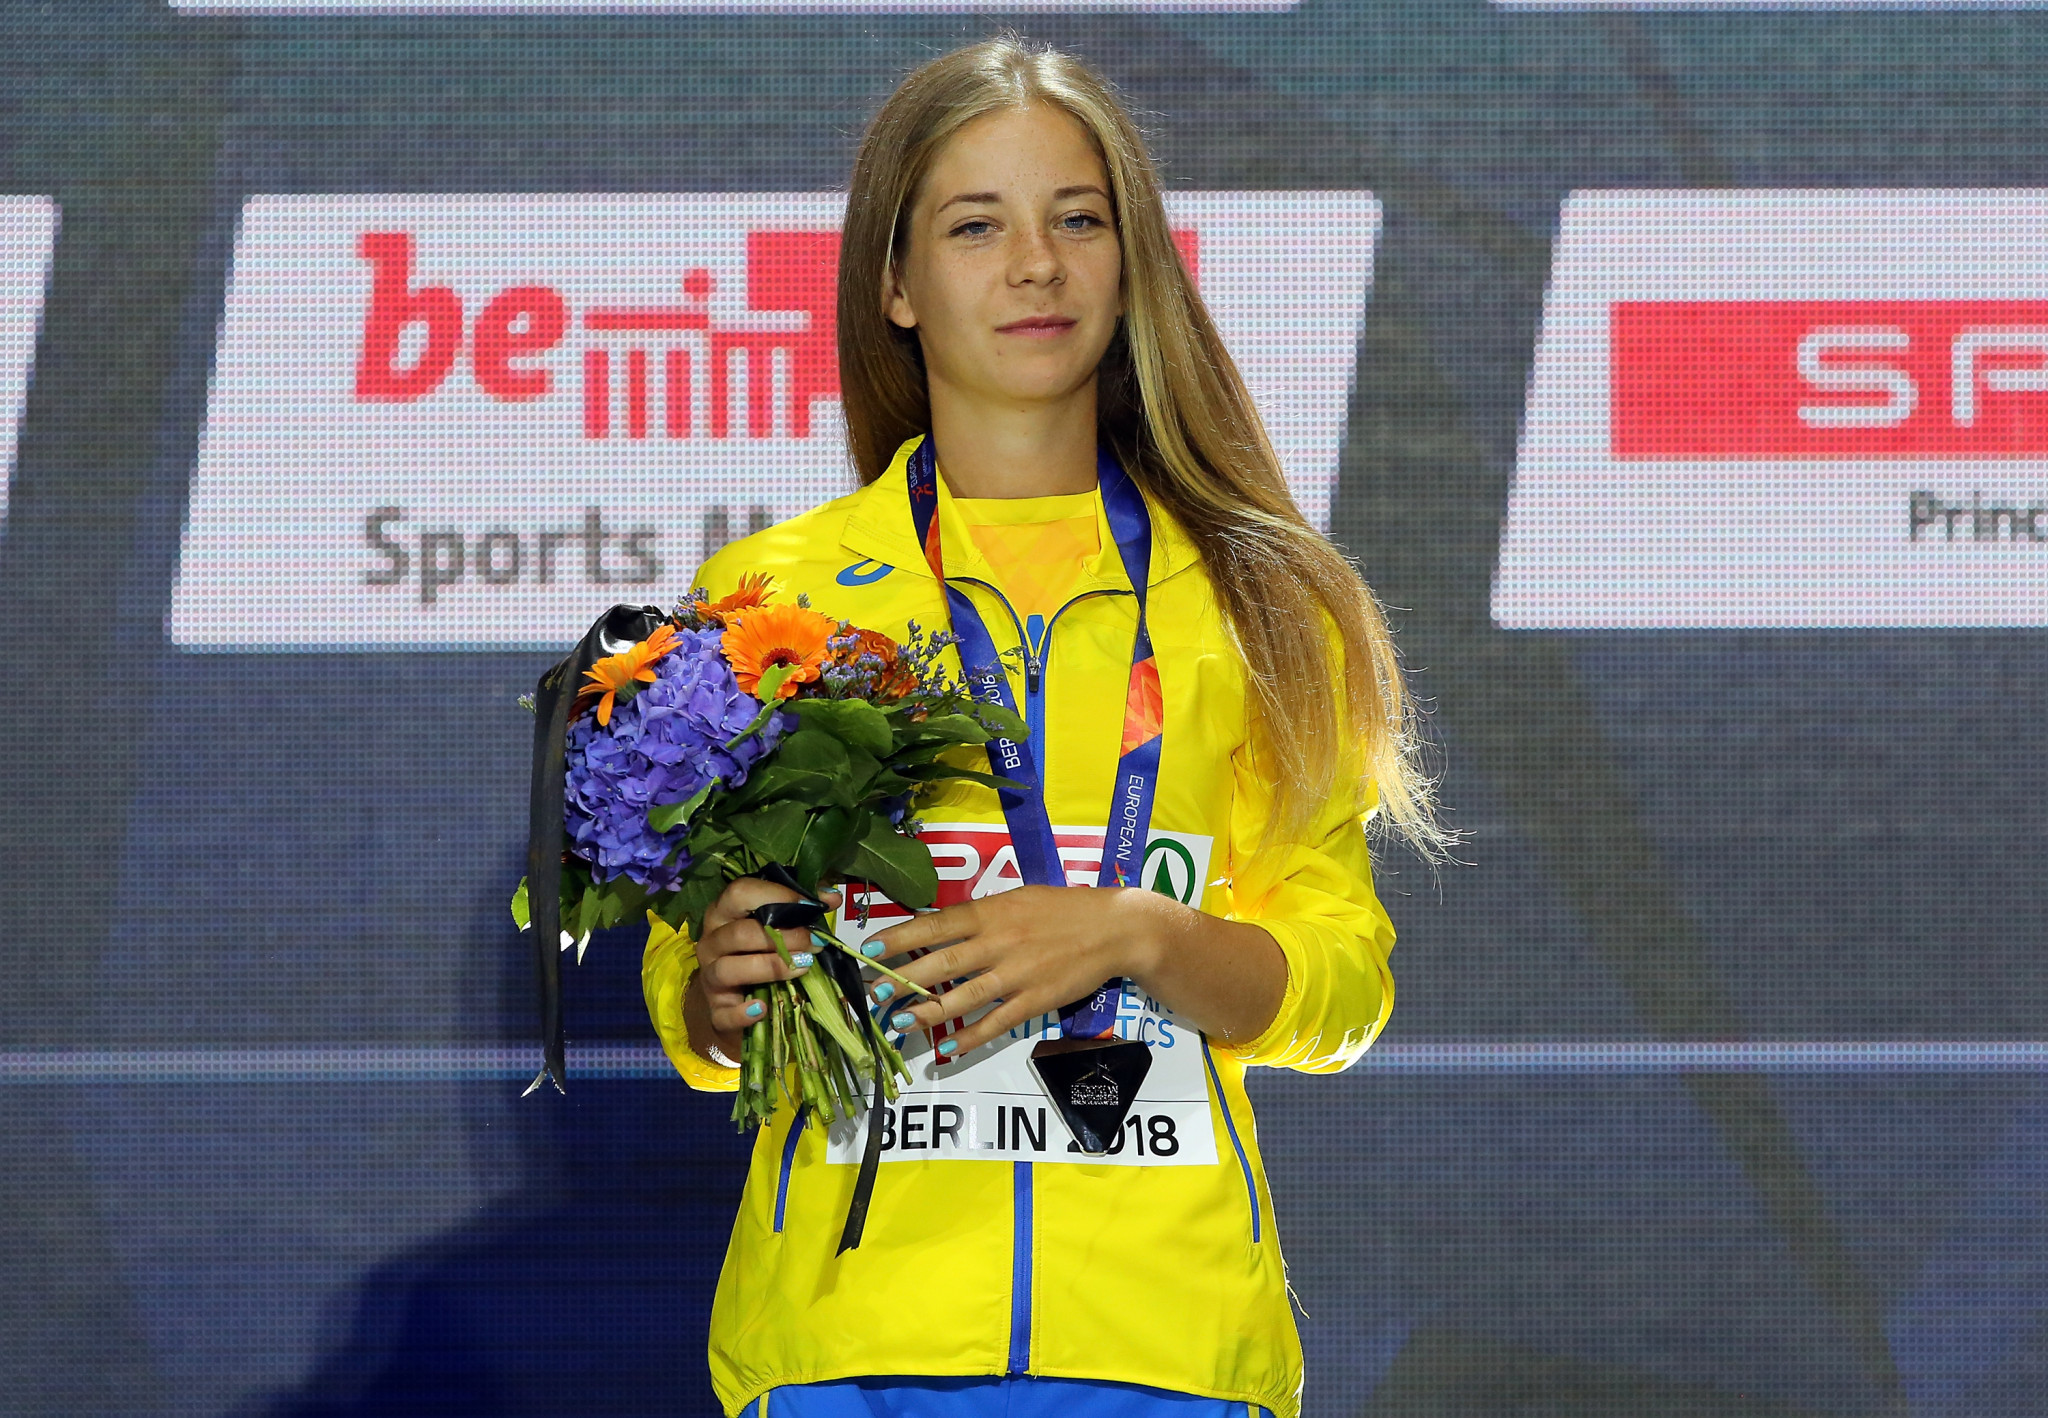 Ukrainian race-walker Alina Tsviliy has been provisionally suspended from competition after testing positive for a banned substance ©Getty Images